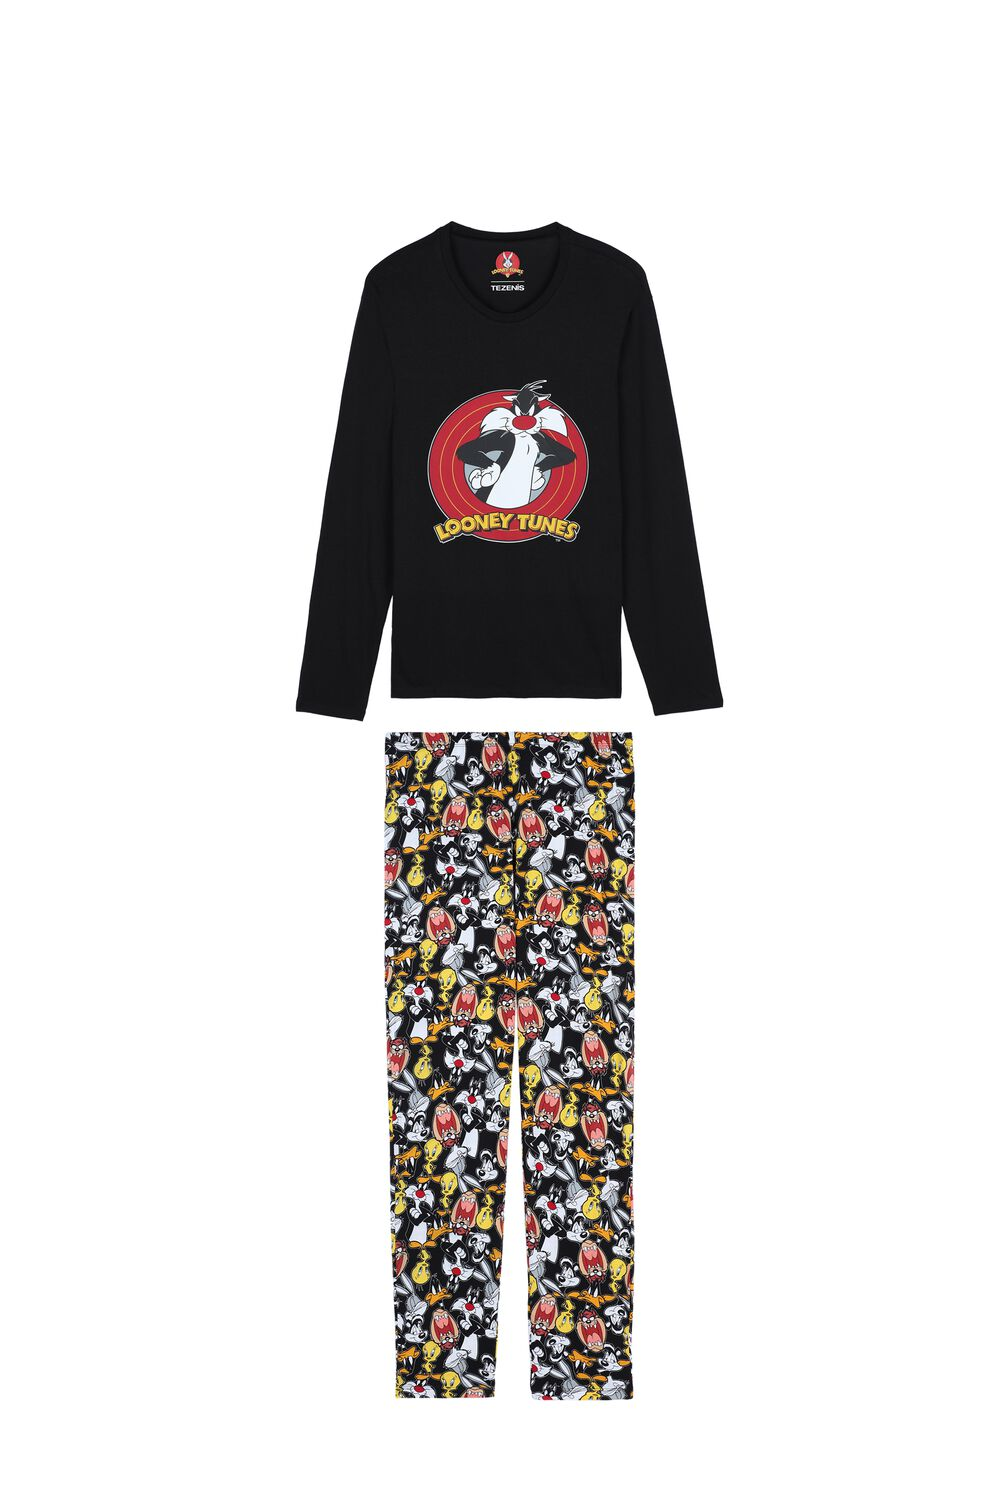 Men's Looney Tunes Long Pyjama